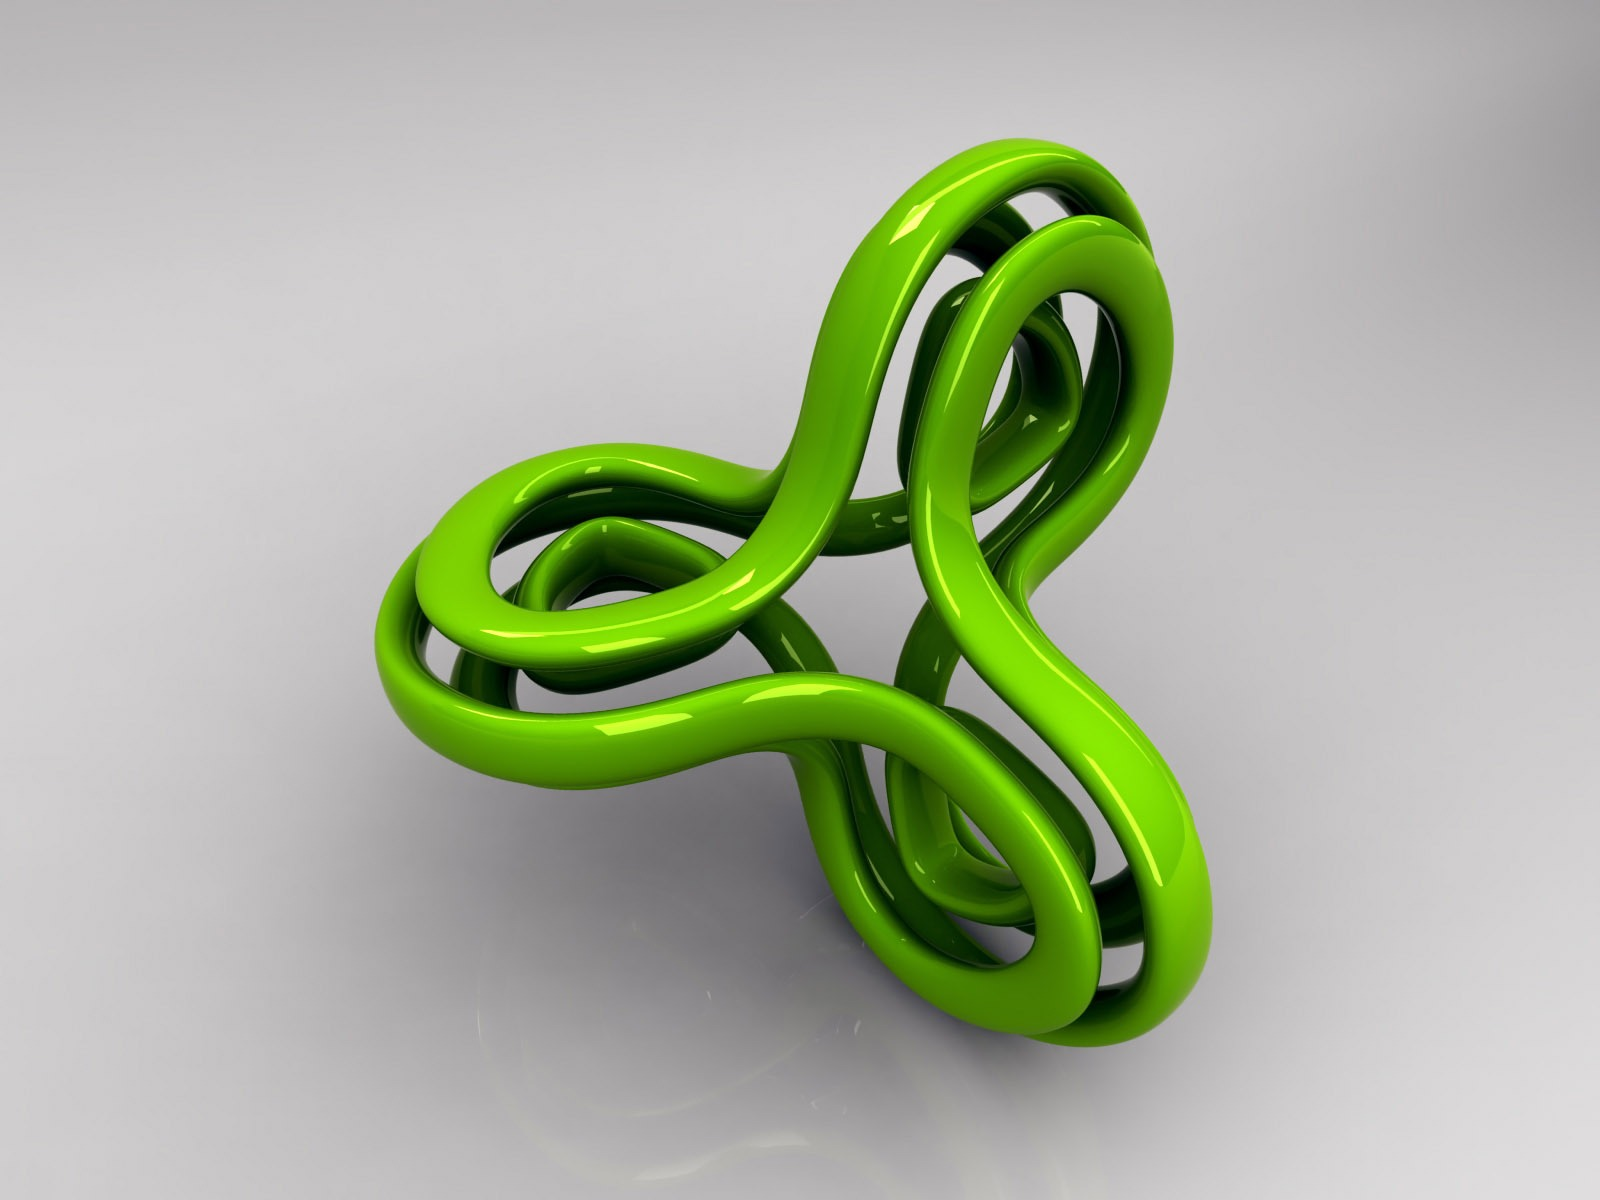 Green loop wallpaper abstract d wallpapers for free download